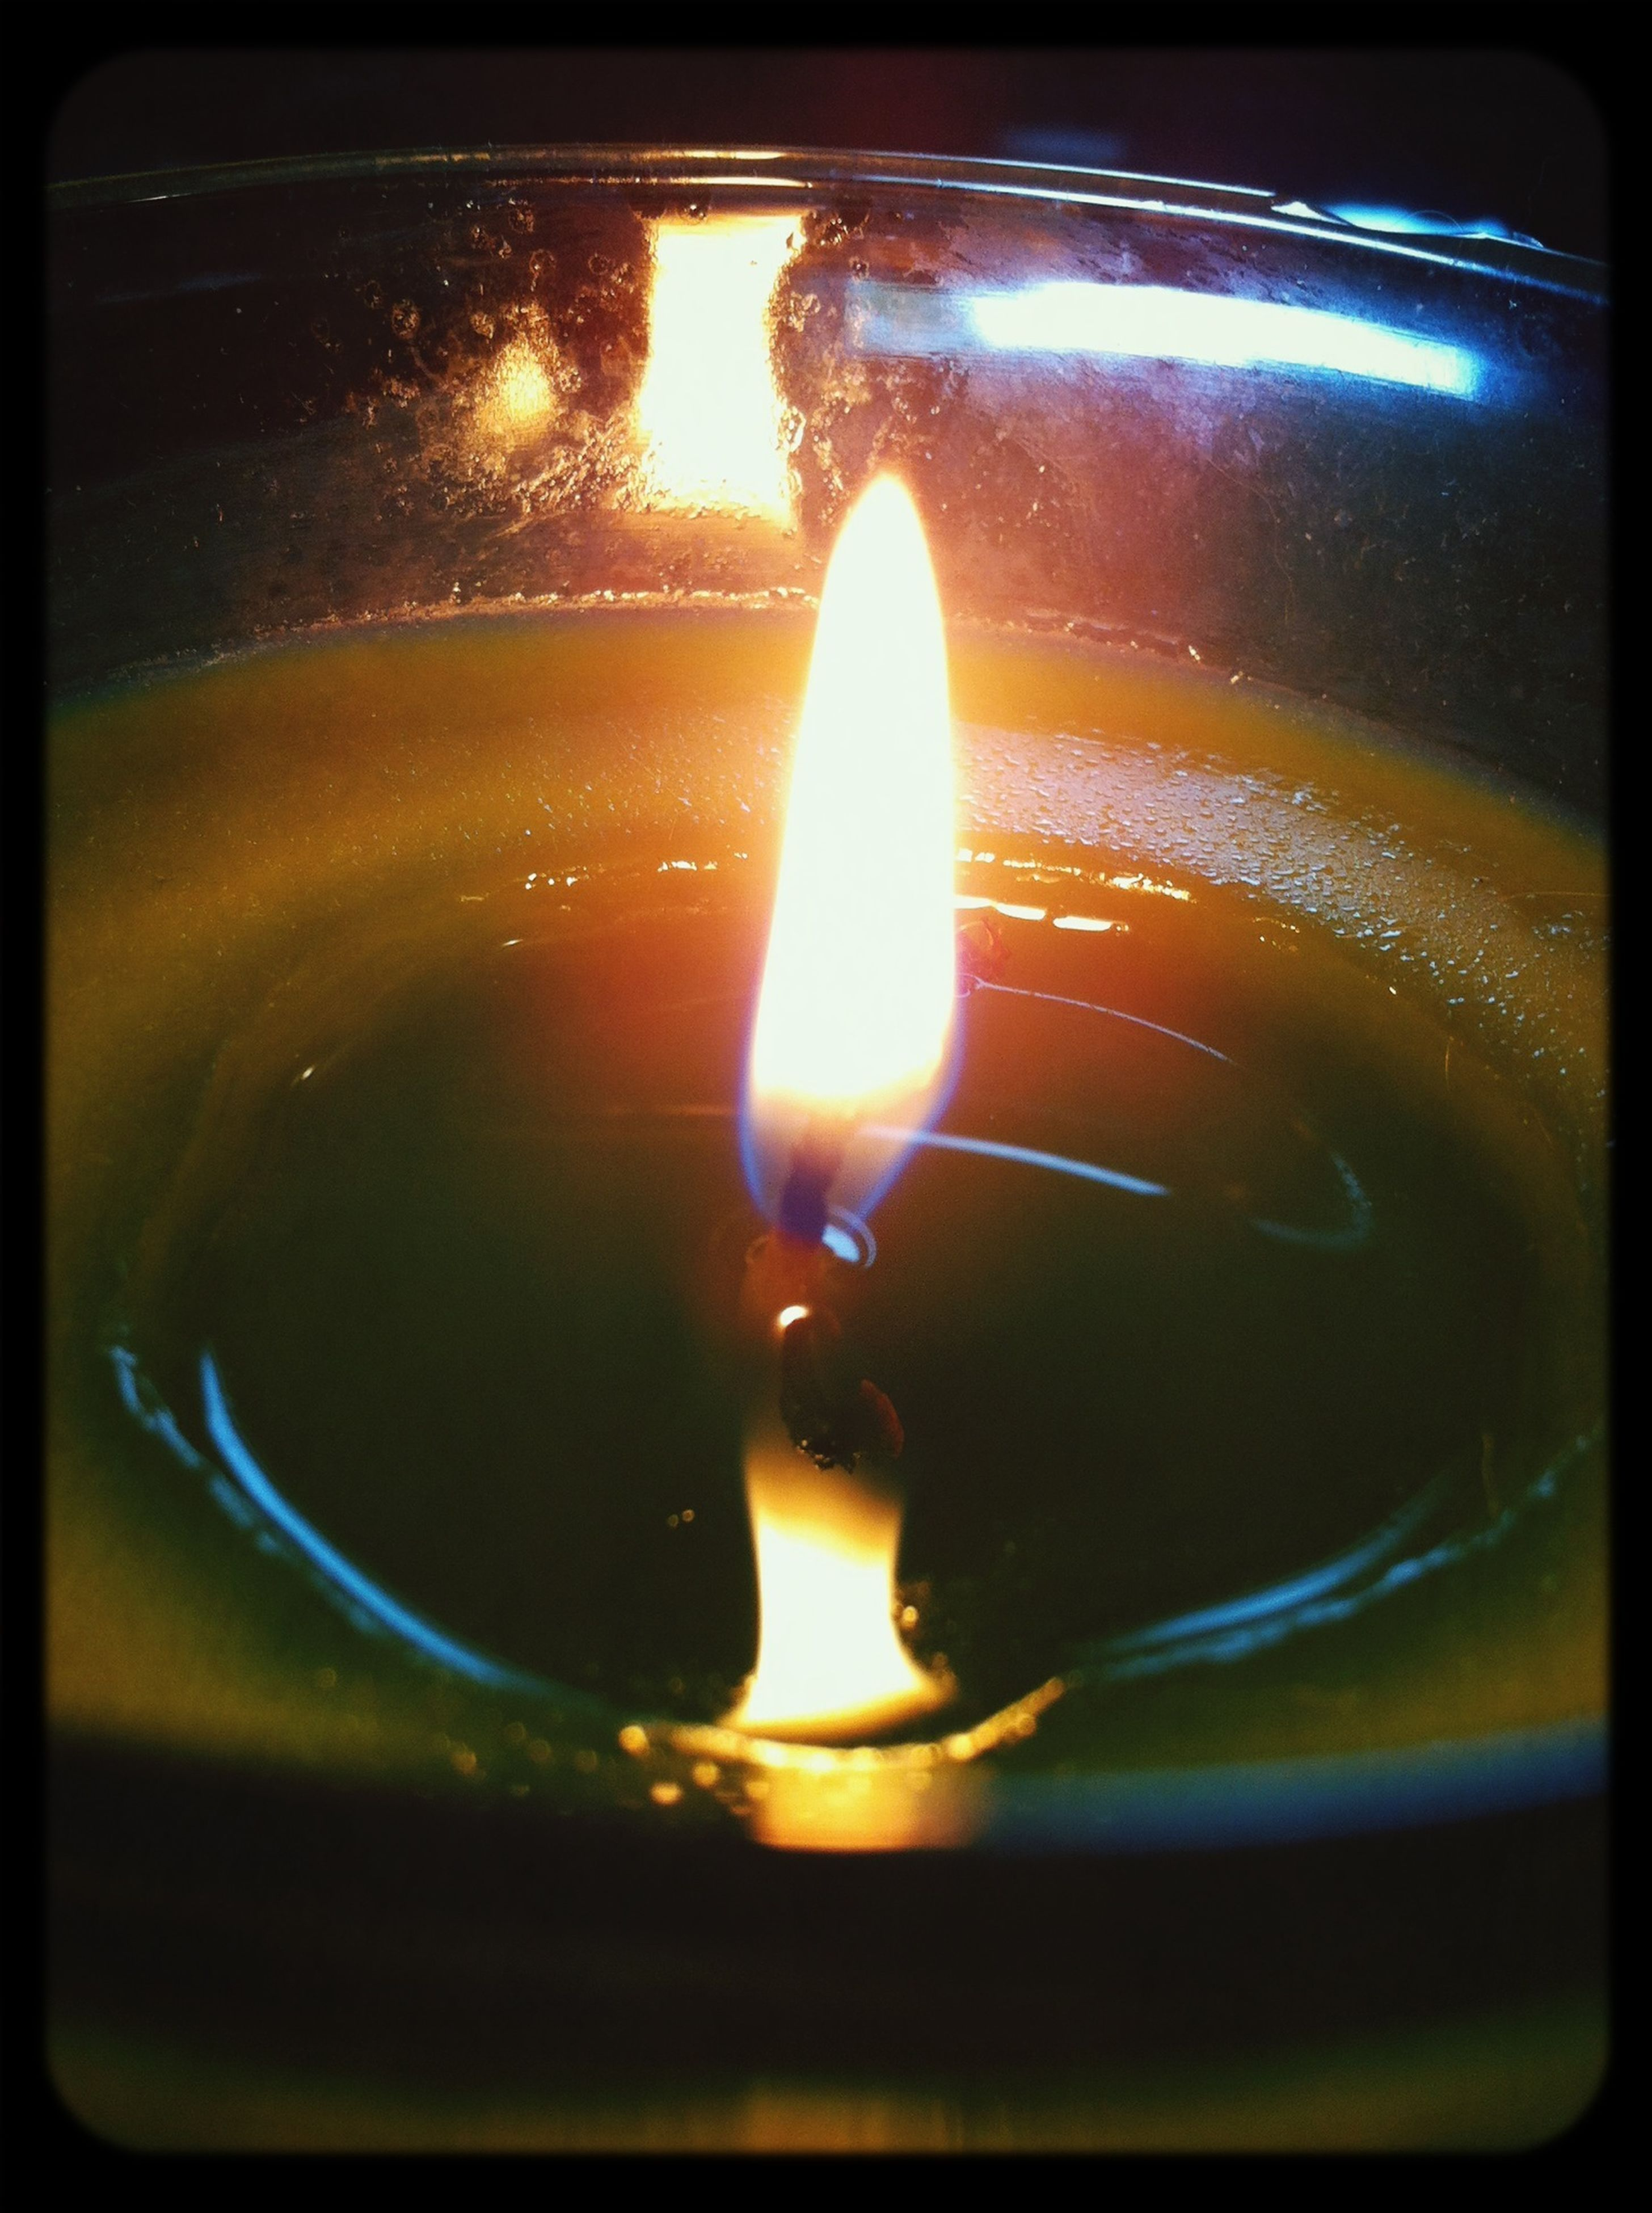 flame, burning, heat - temperature, glowing, fire - natural phenomenon, transfer print, close-up, reflection, indoors, fire, auto post production filter, glass - material, orange color, transparent, dark, motion, illuminated, no people, candle, night